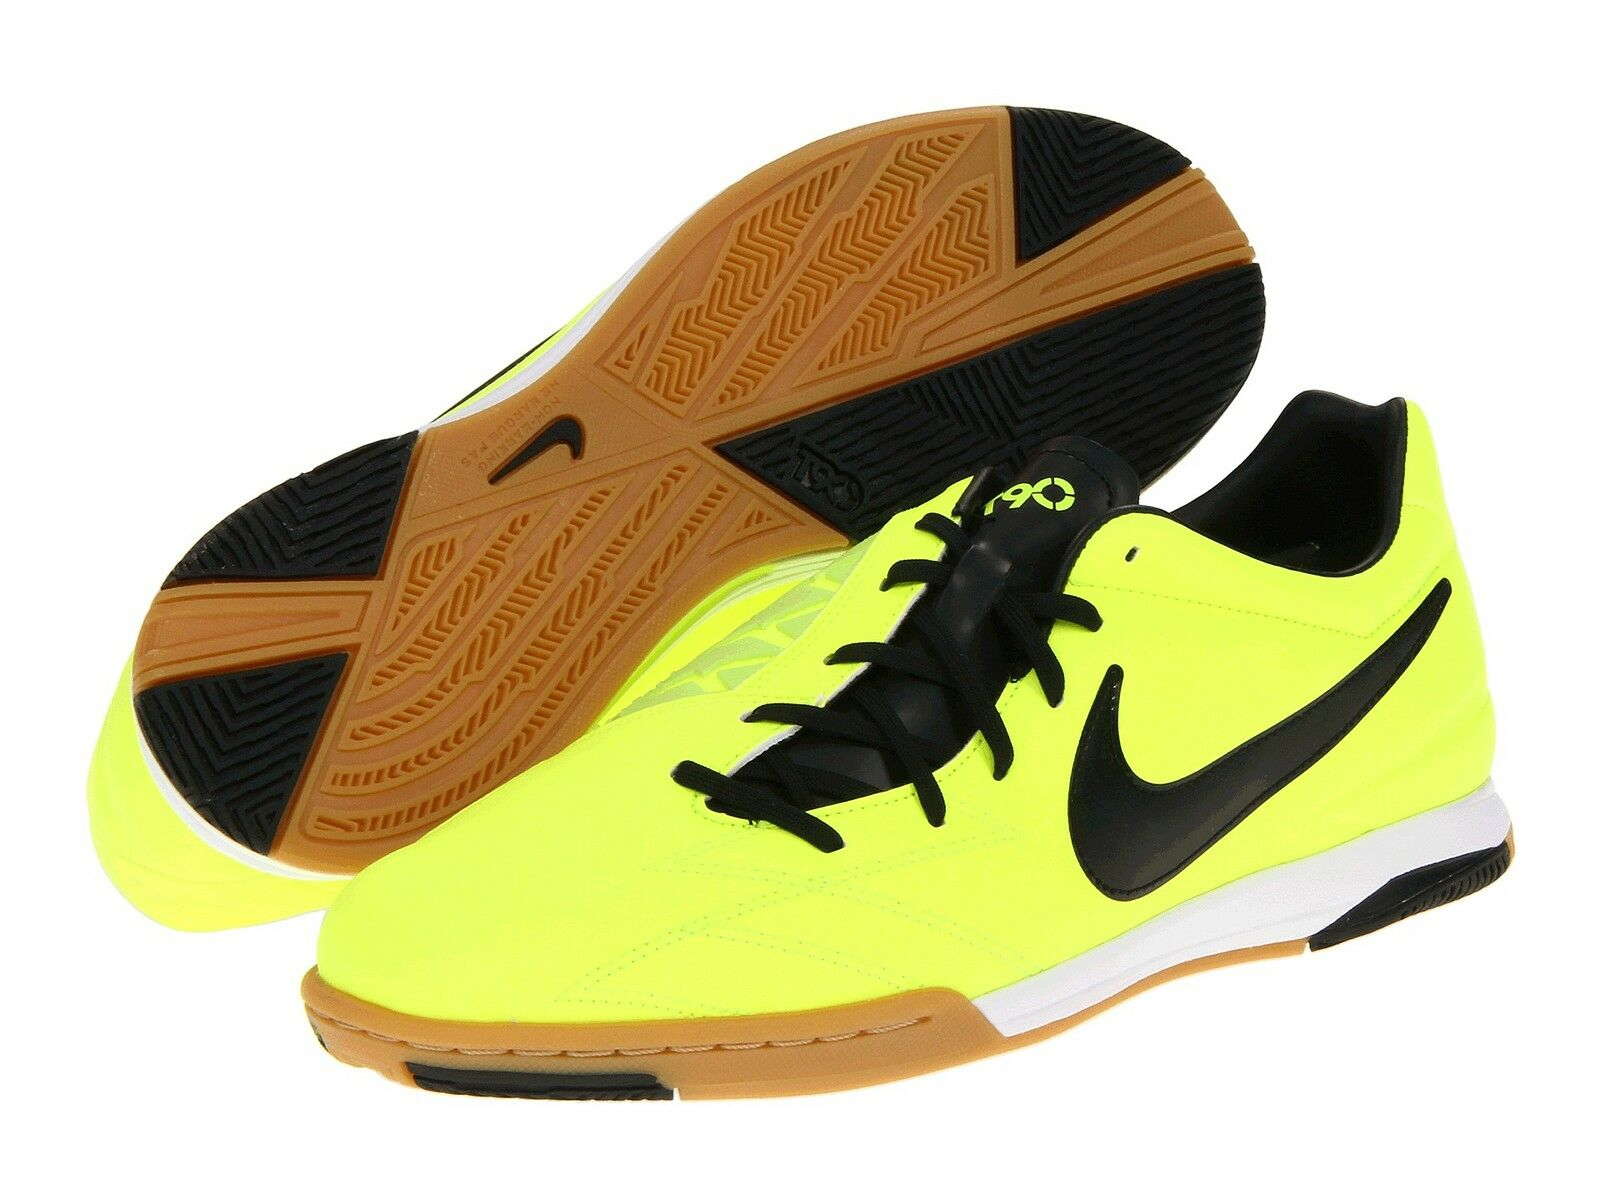 Nike Total 90 Shoot IV IC Indoor 2012 Soccer Shoes Brand New Volt - Black